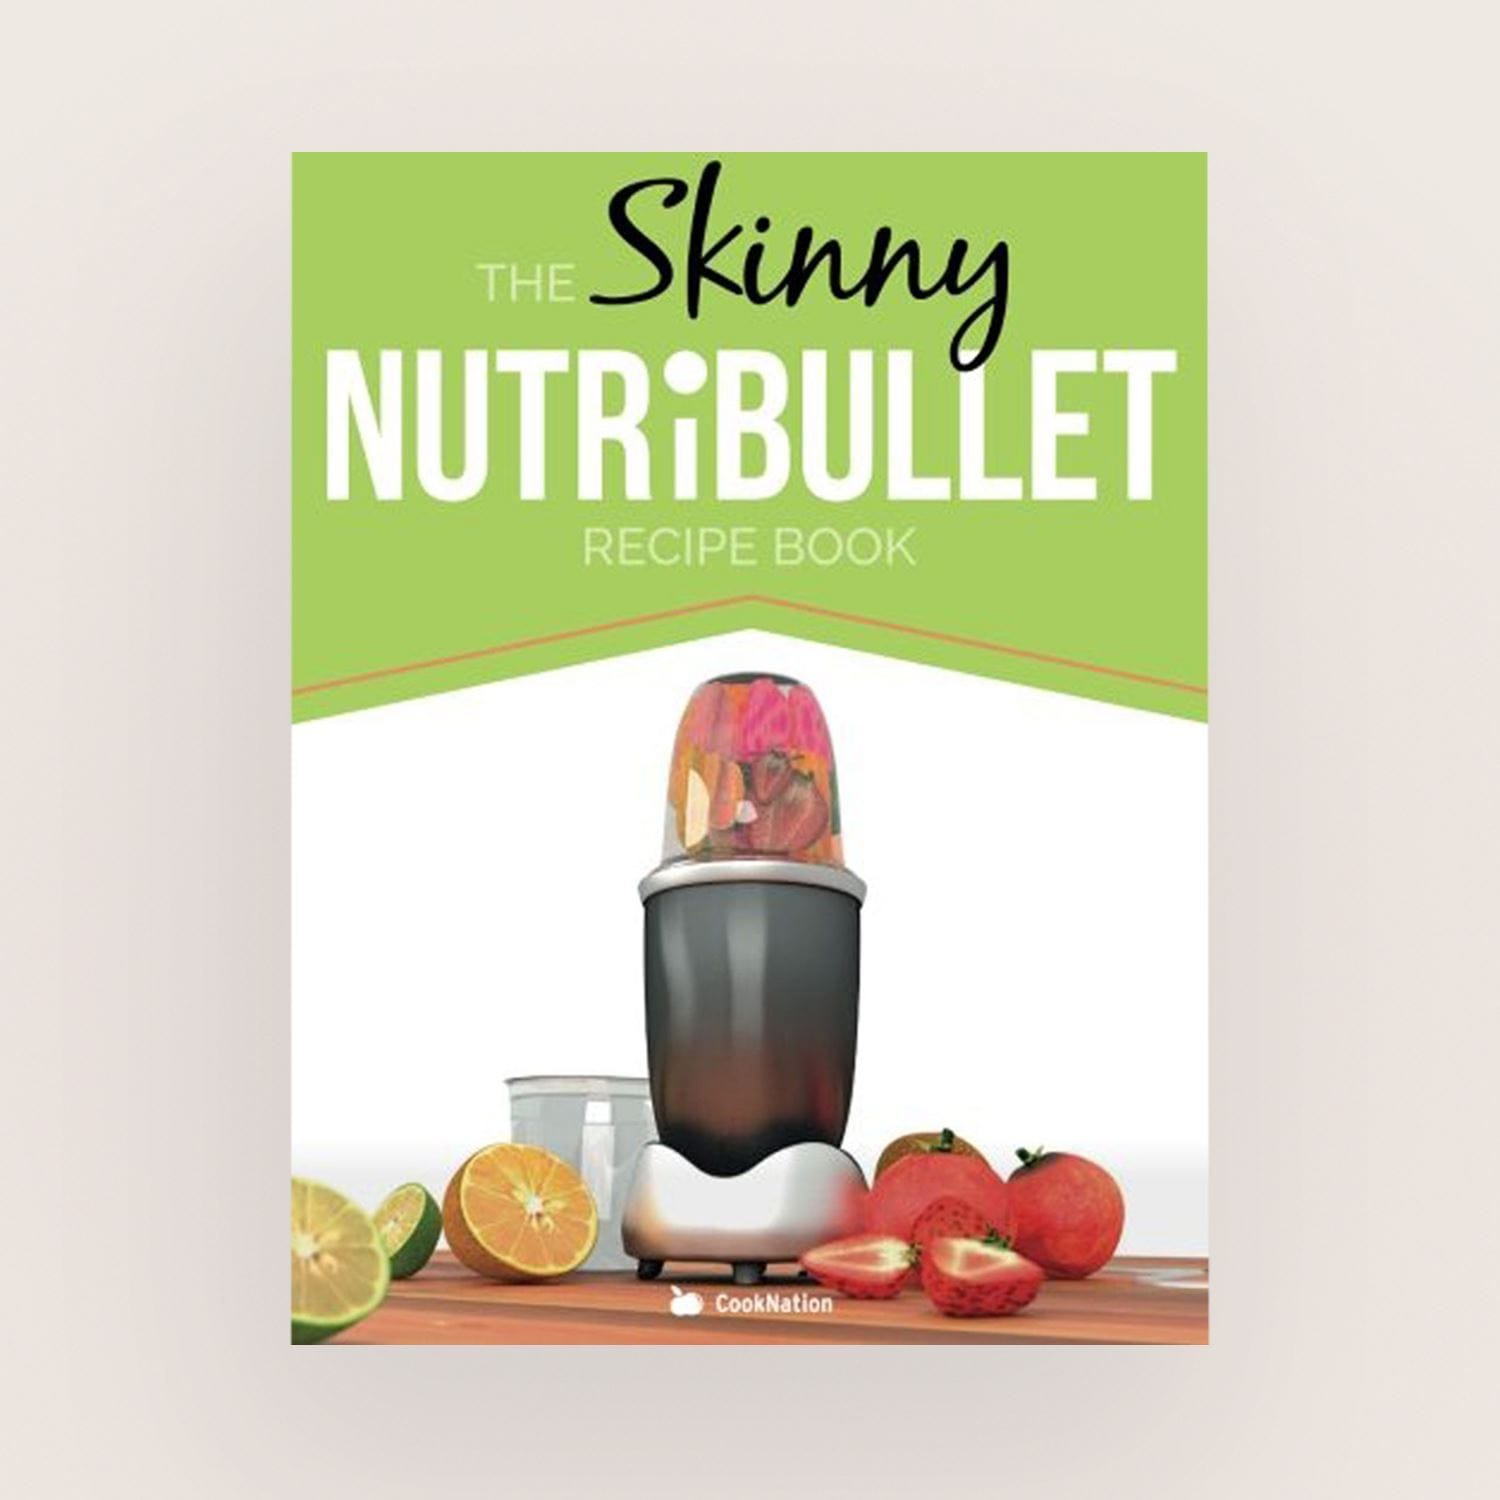 The Skinny NutriBullet Recipe Book